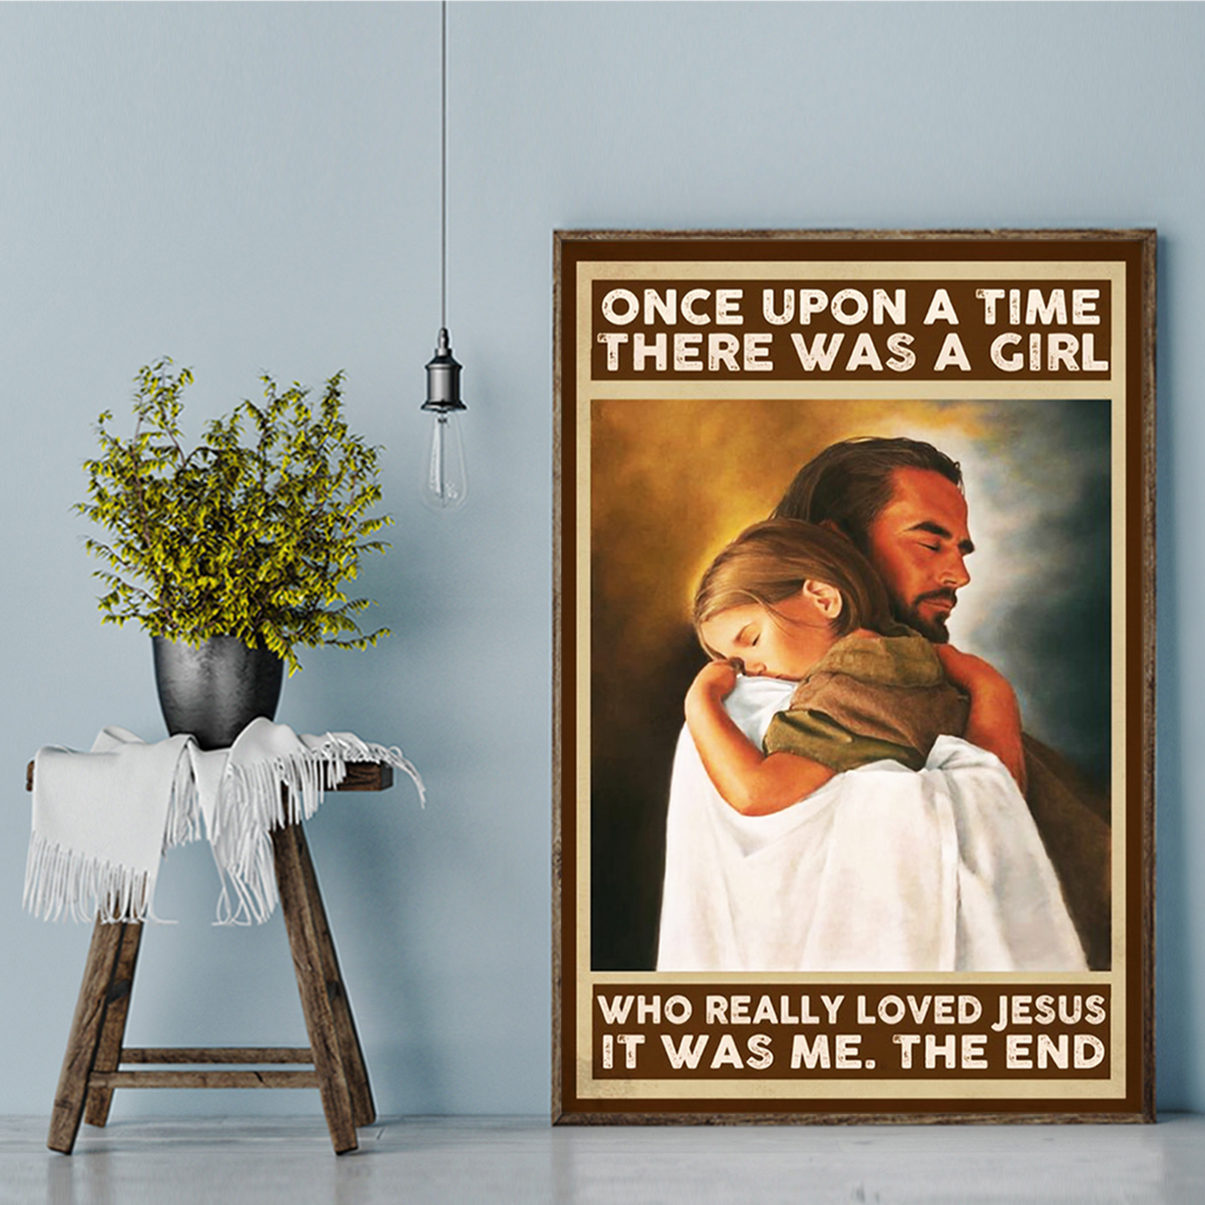 Once upon a time there was a girl who reall loved jesus poster A1